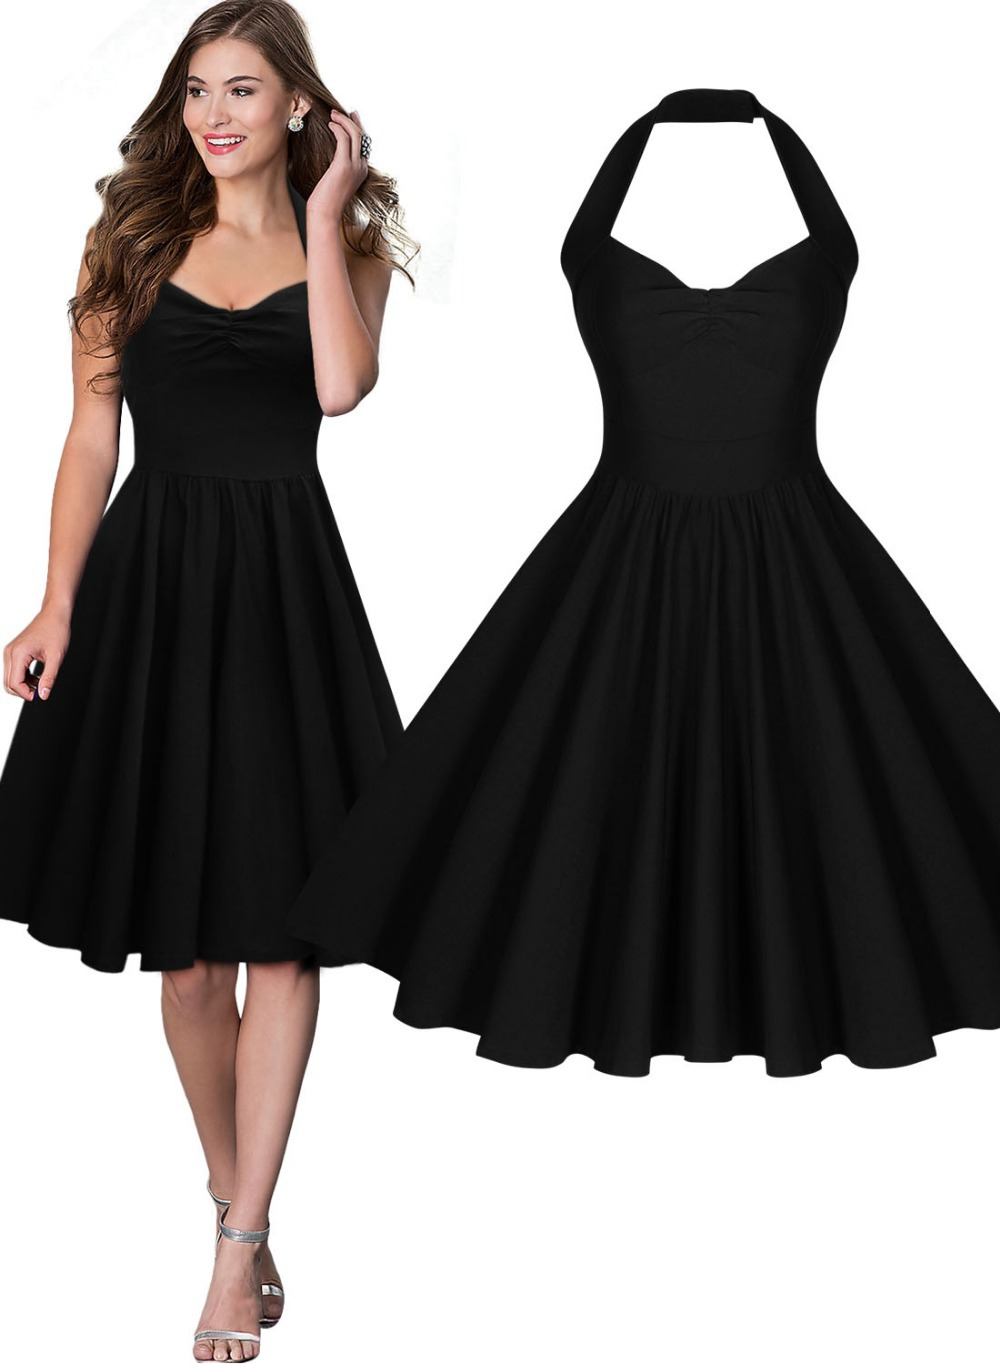 Not absolutely vintage style black dress theme simply